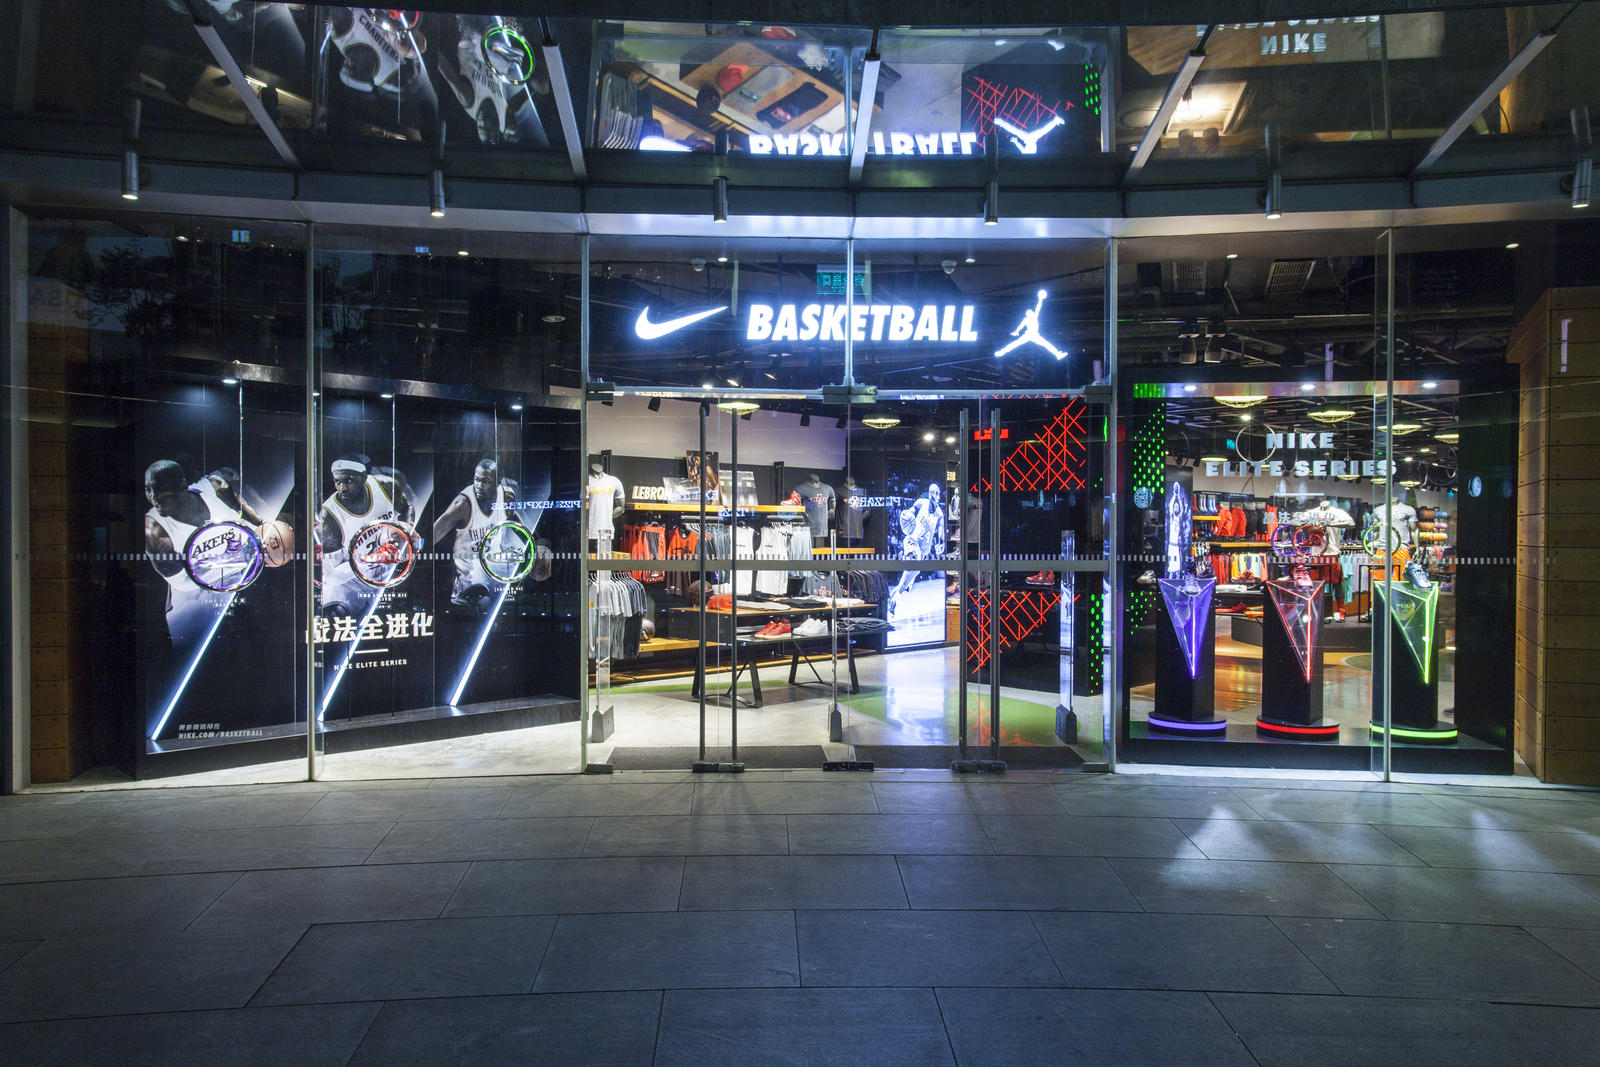 Inside Access: Nike Fosters Basketball's Growth and